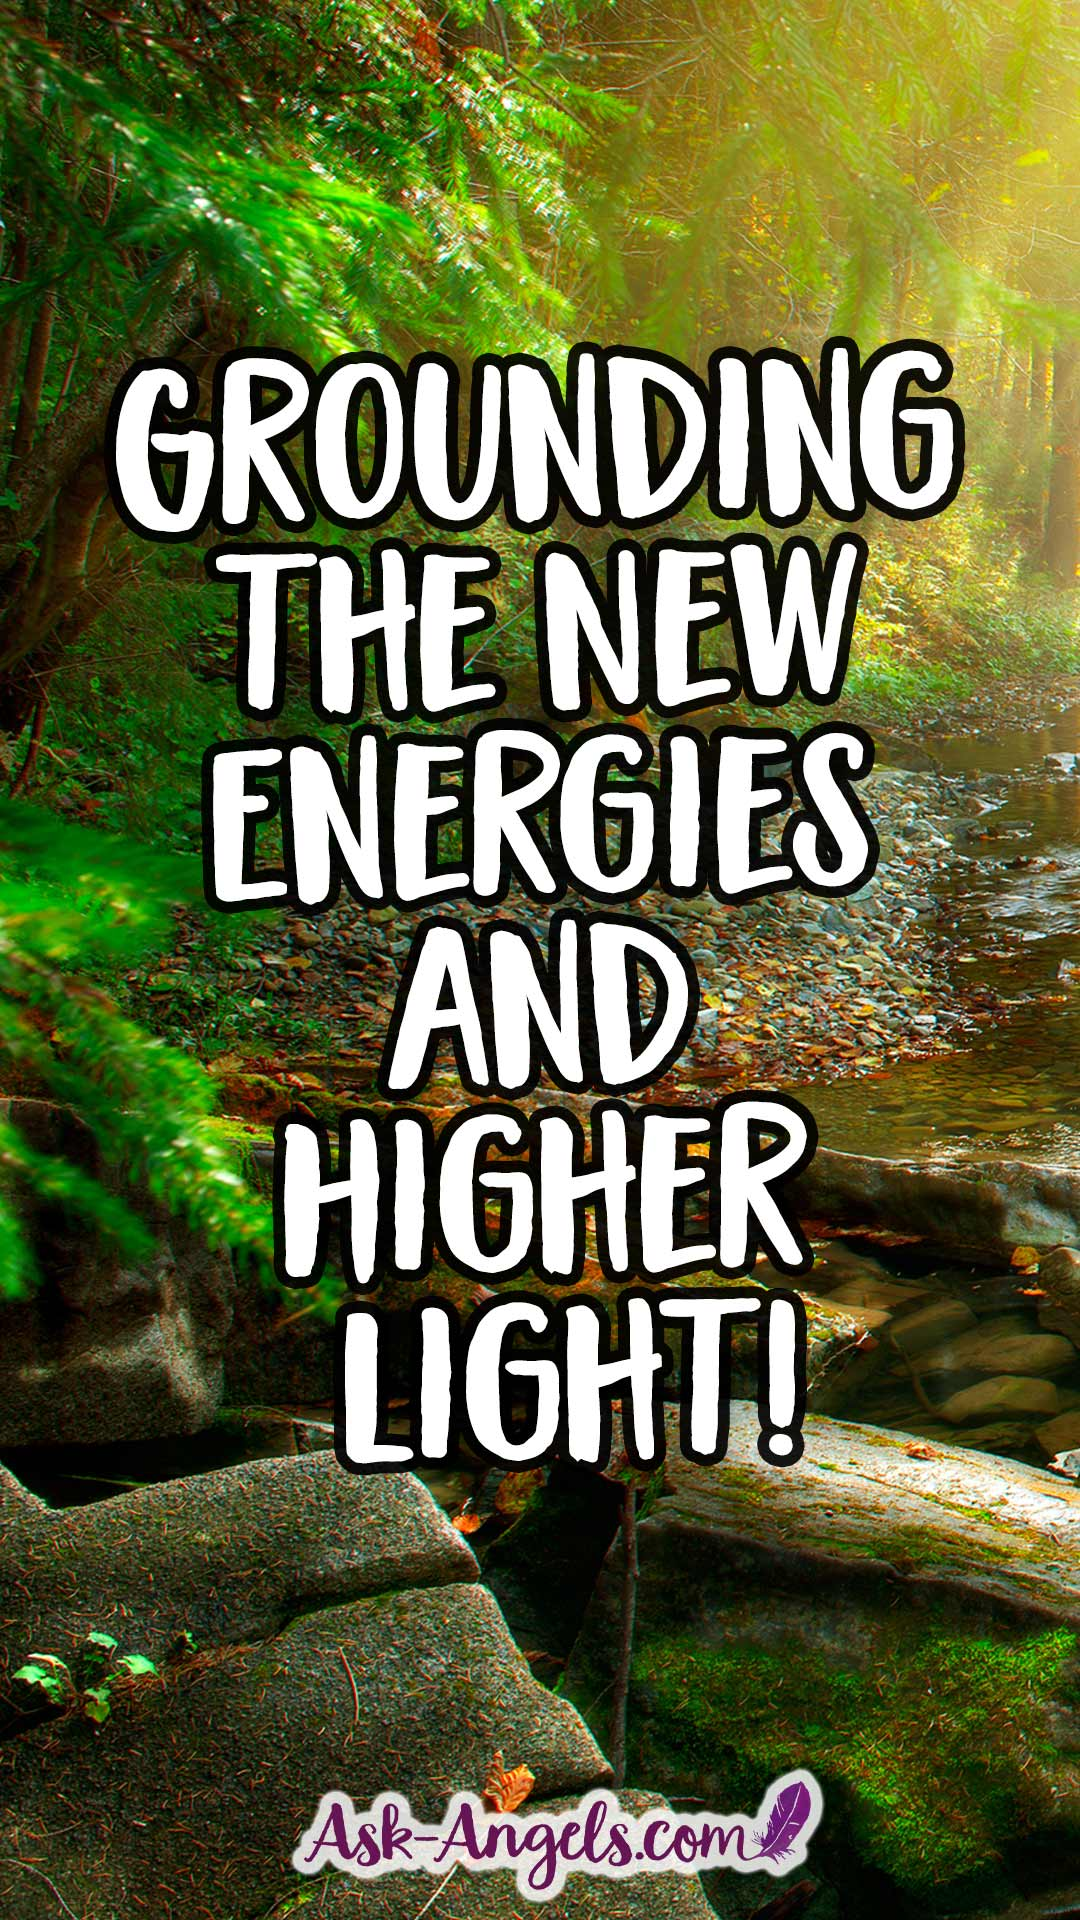 Learn a powerful grounding exercise for grounding the new energies and higher light!